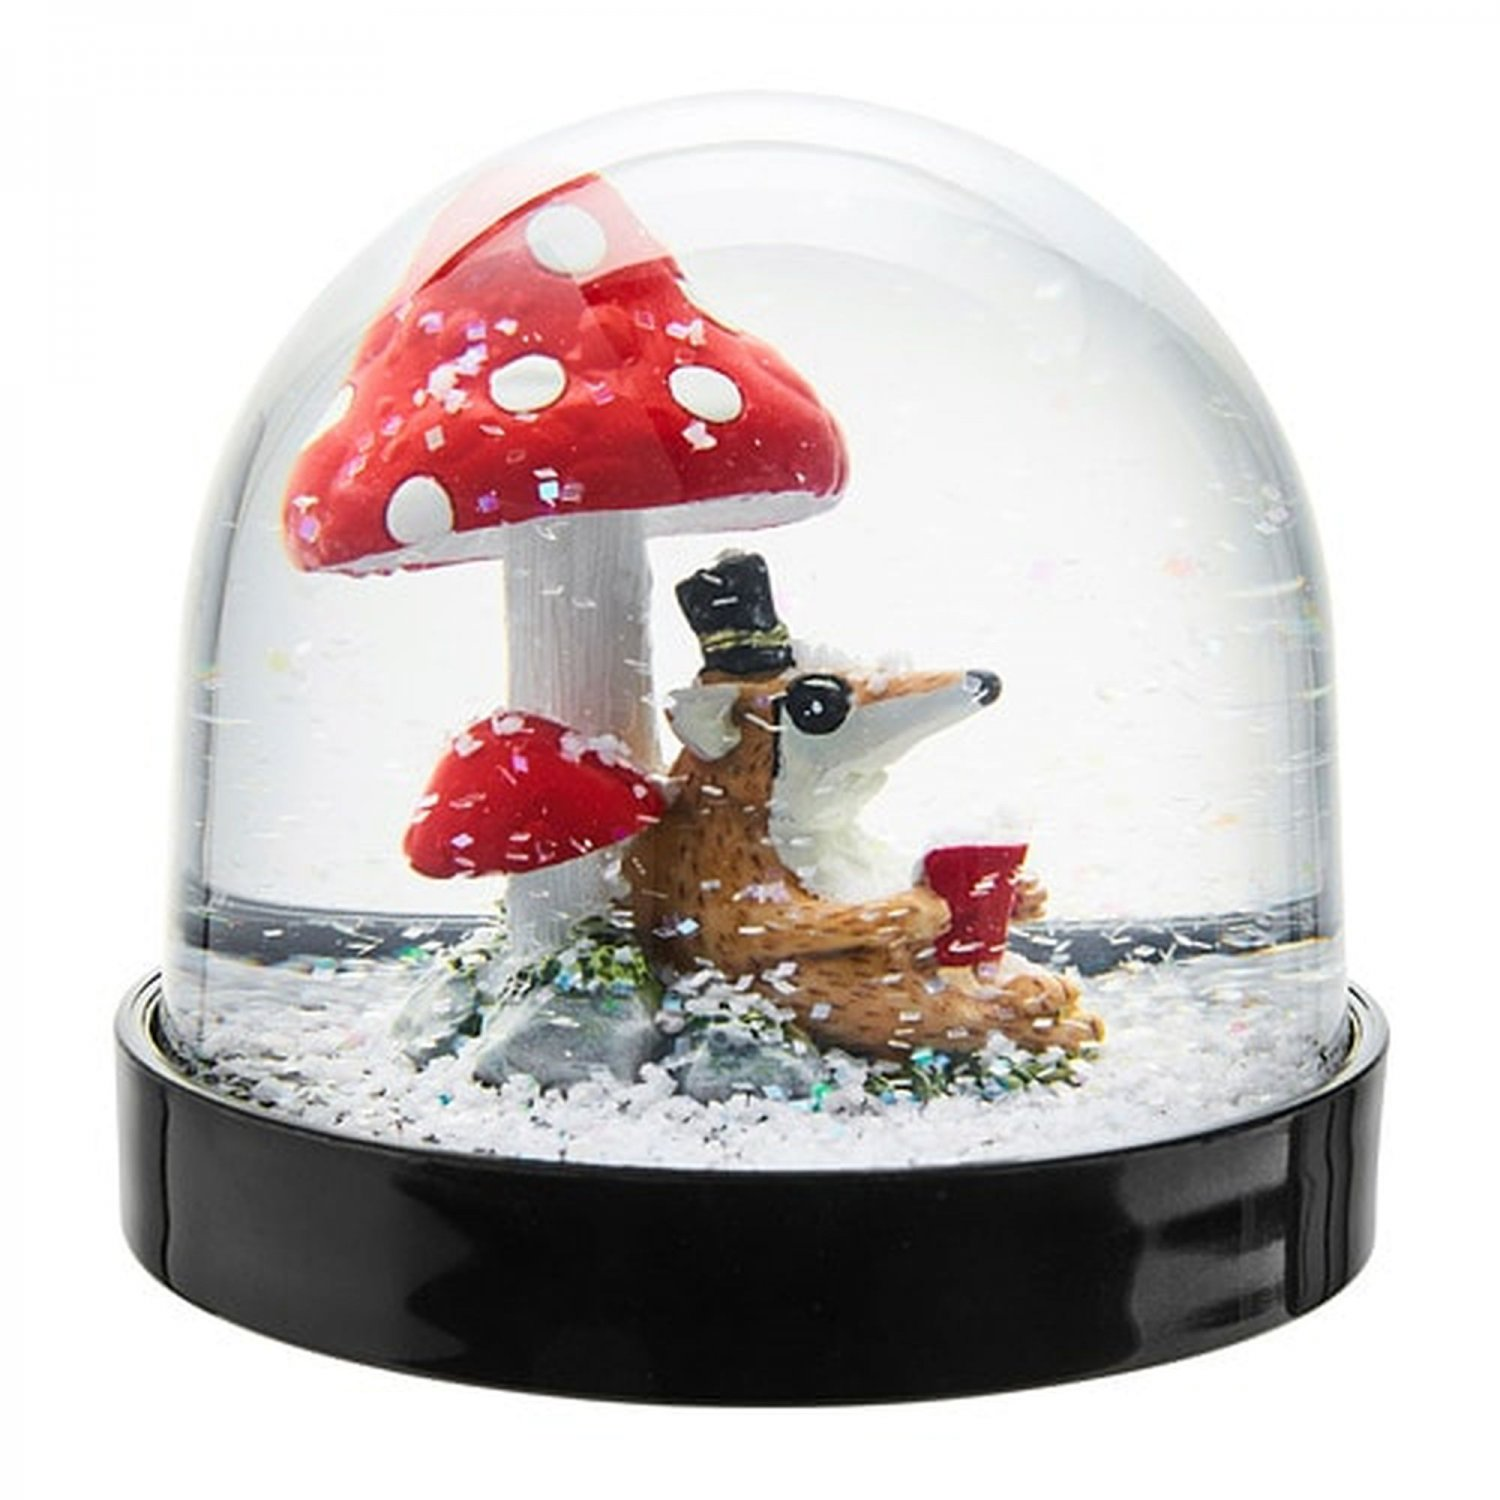 IKEA Vinter 2018 Snow Globe Snoglobe READING HEDGEHOG Badger Red MUSHROOM Xmas Decoration